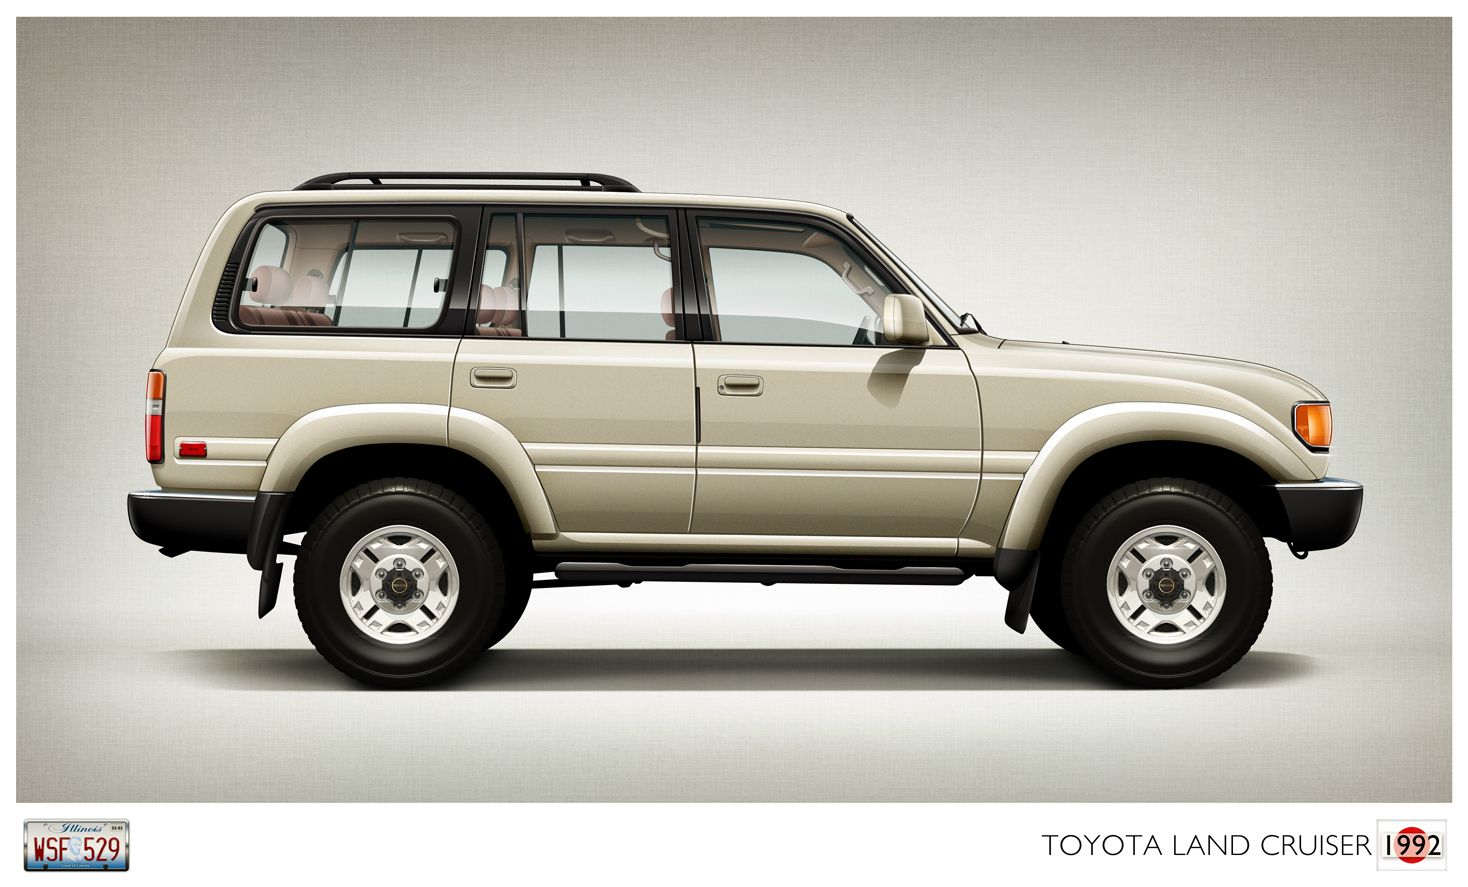 I had firstcar do an illustration of my 1992 toyota land cruiser and it came out